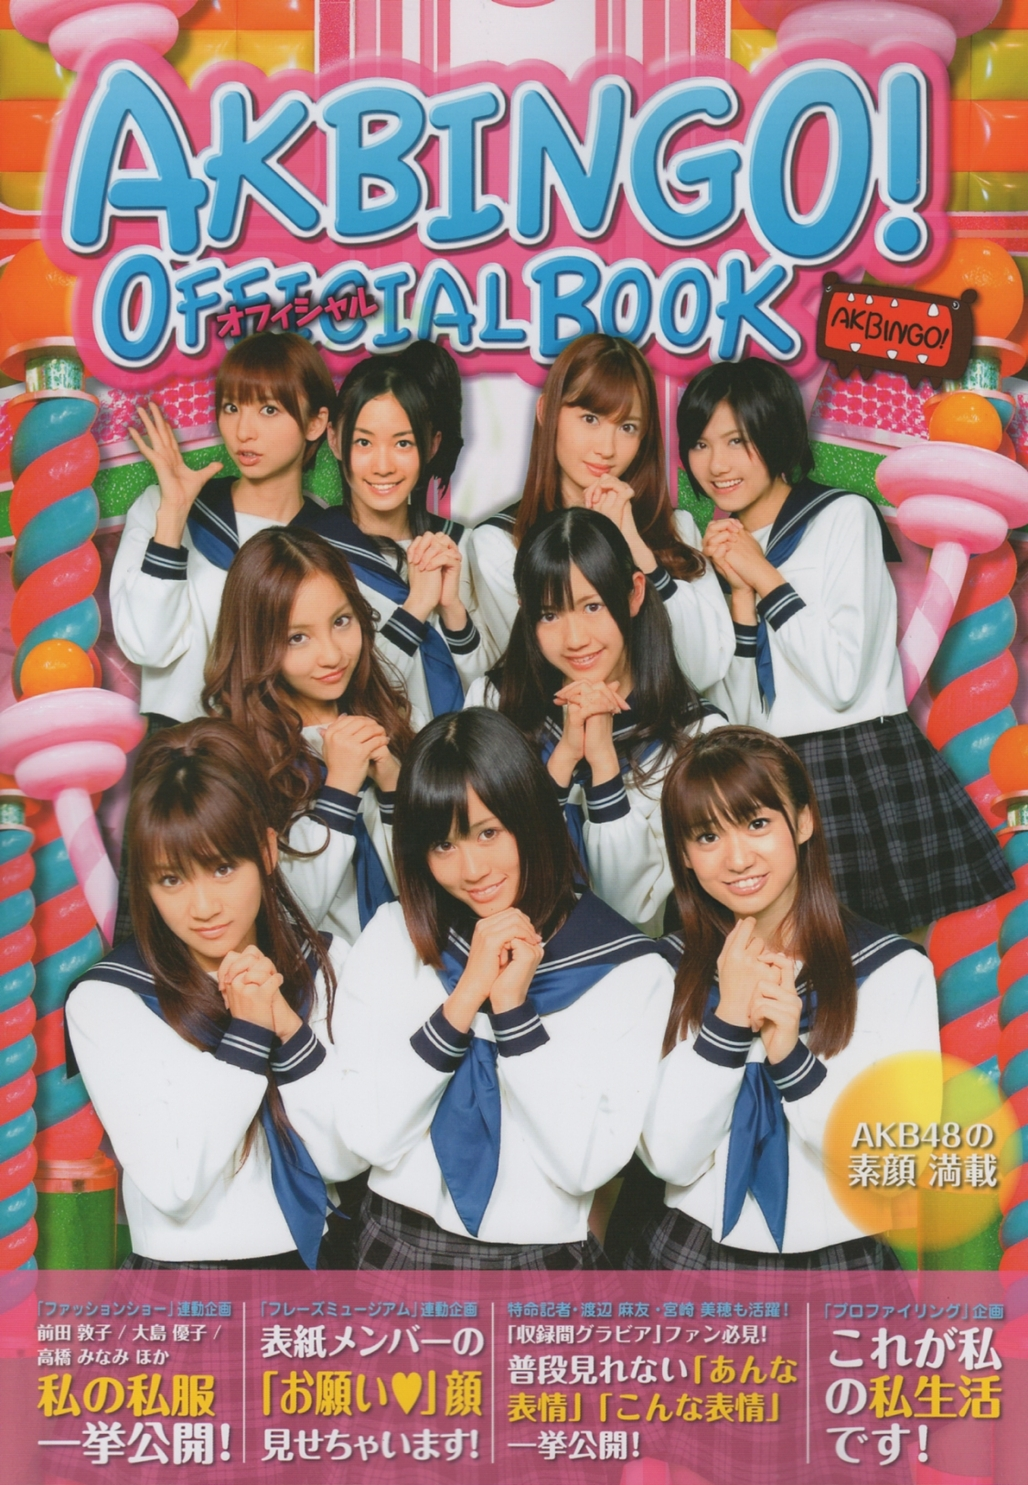 [WU] AKB48 - AKBINGO! OFFICIAL BOOK [93p/98mb]Real Street Angels